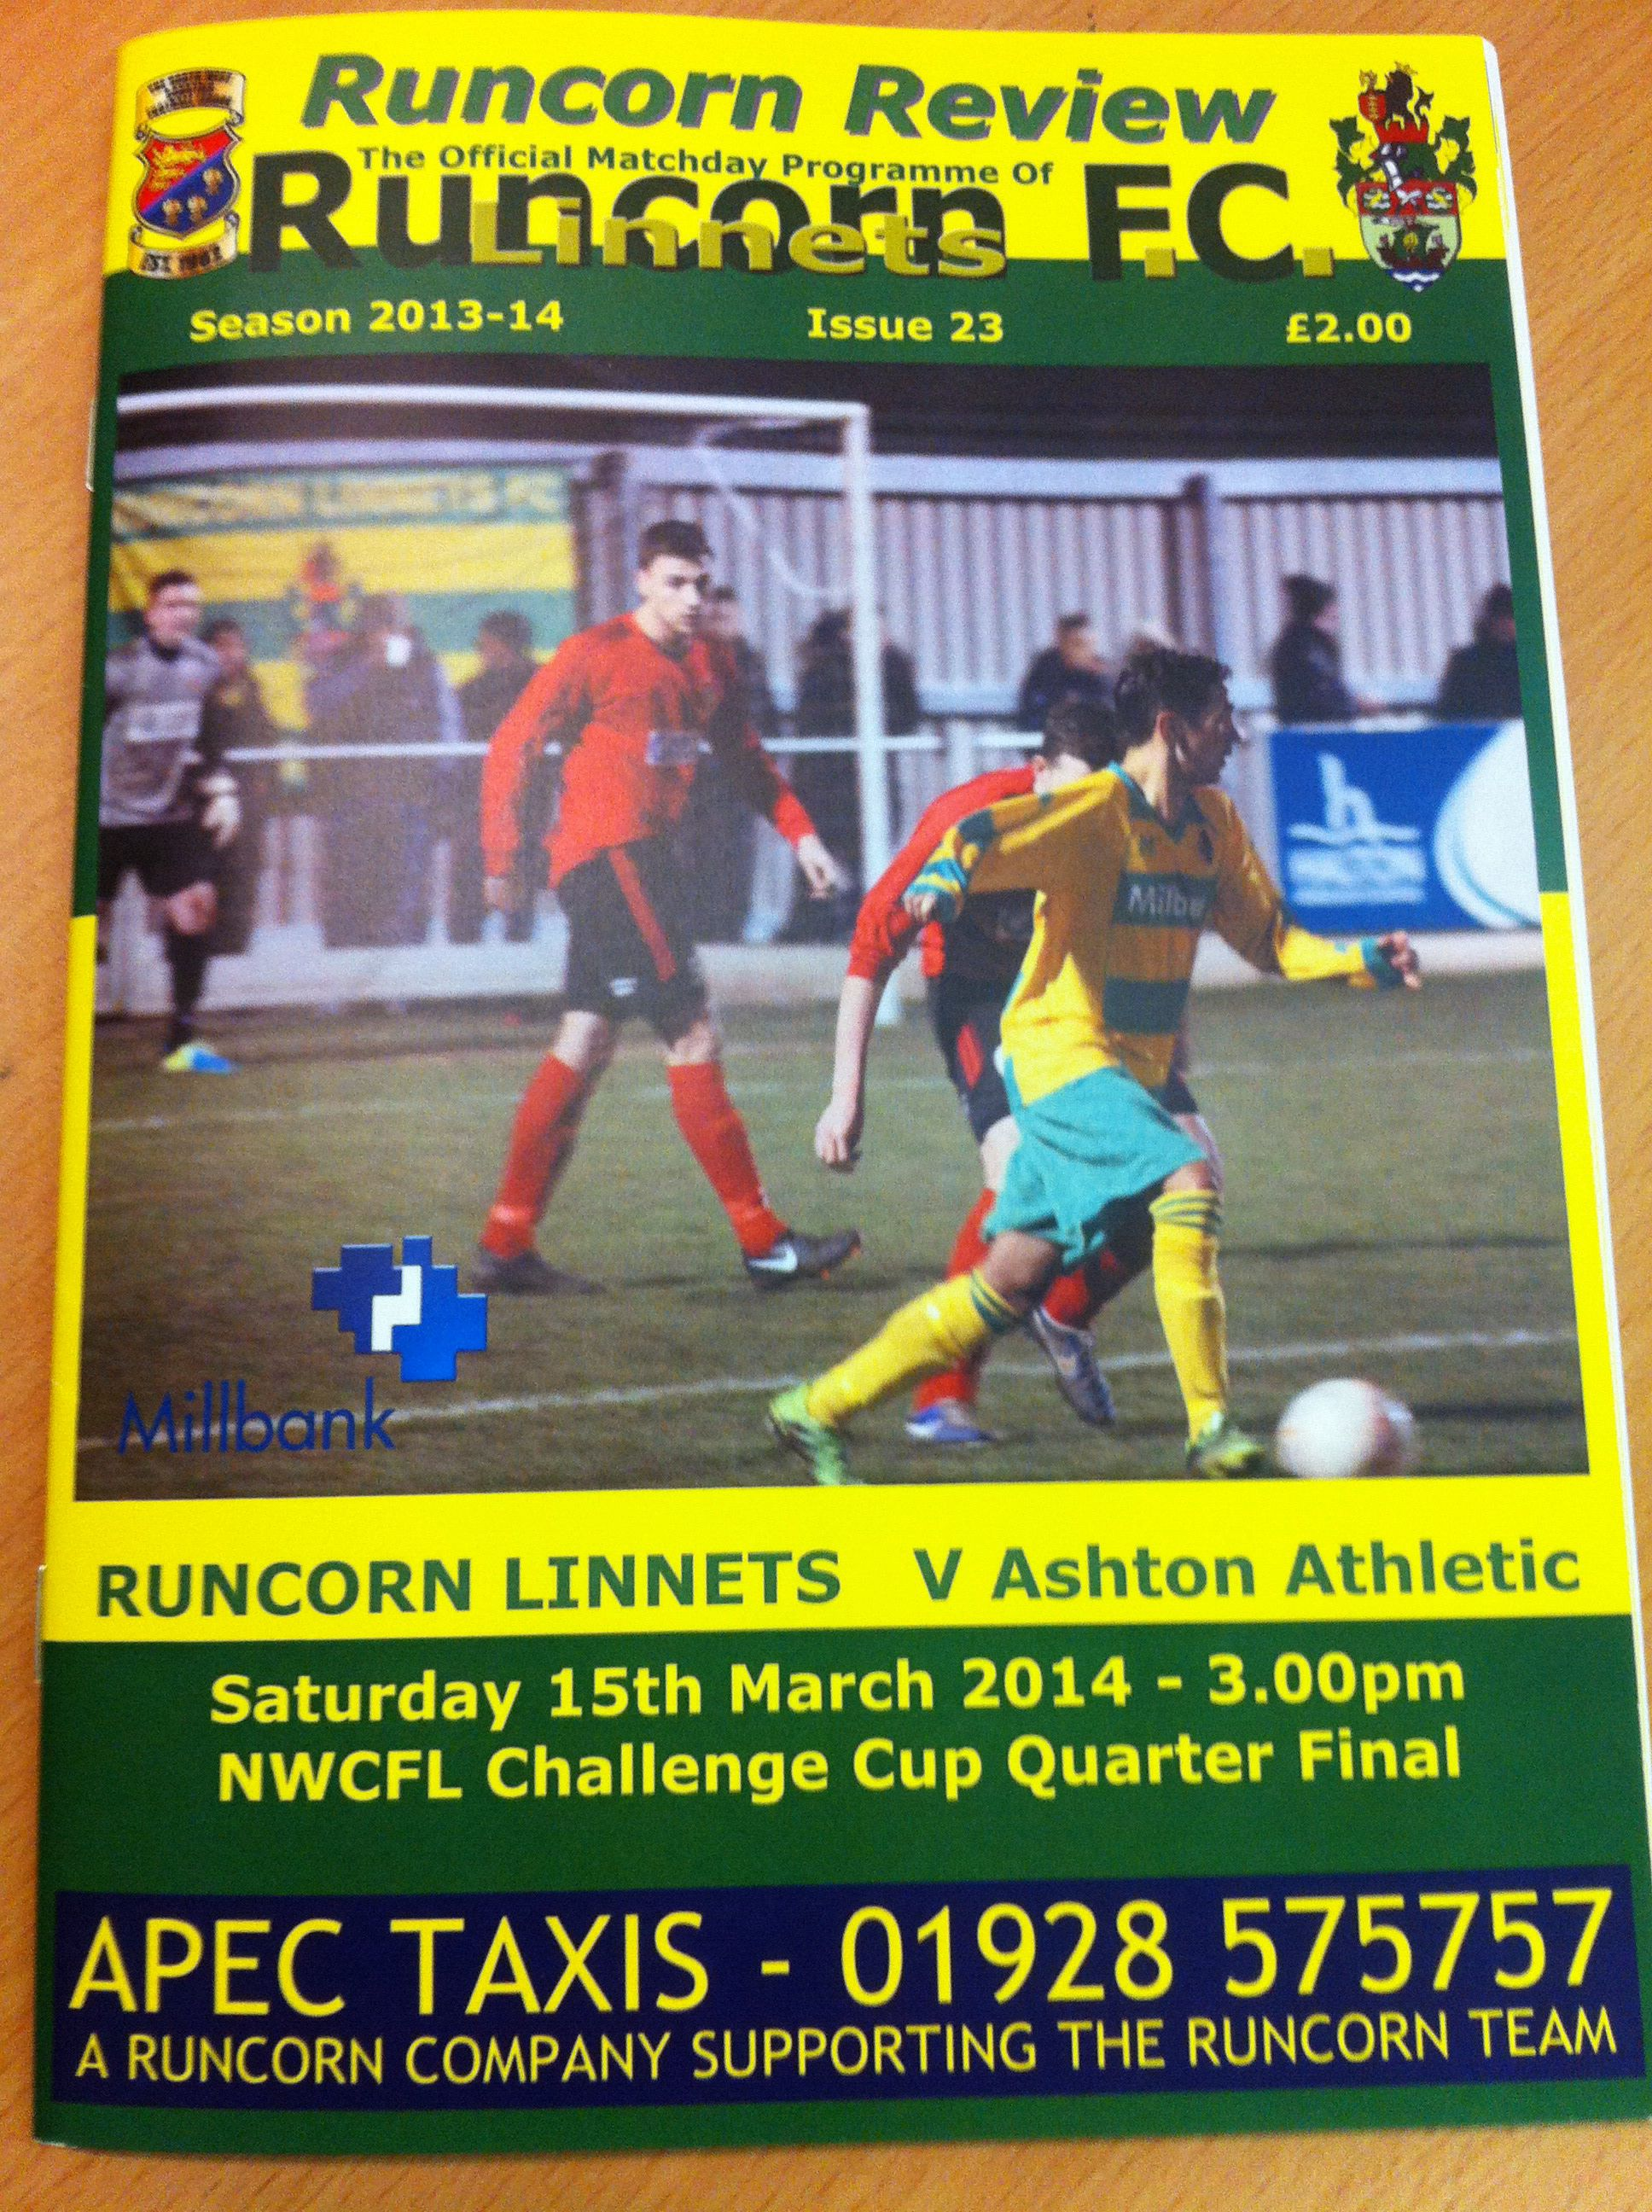 Runcorn v Ashton Athletic (With images) Football